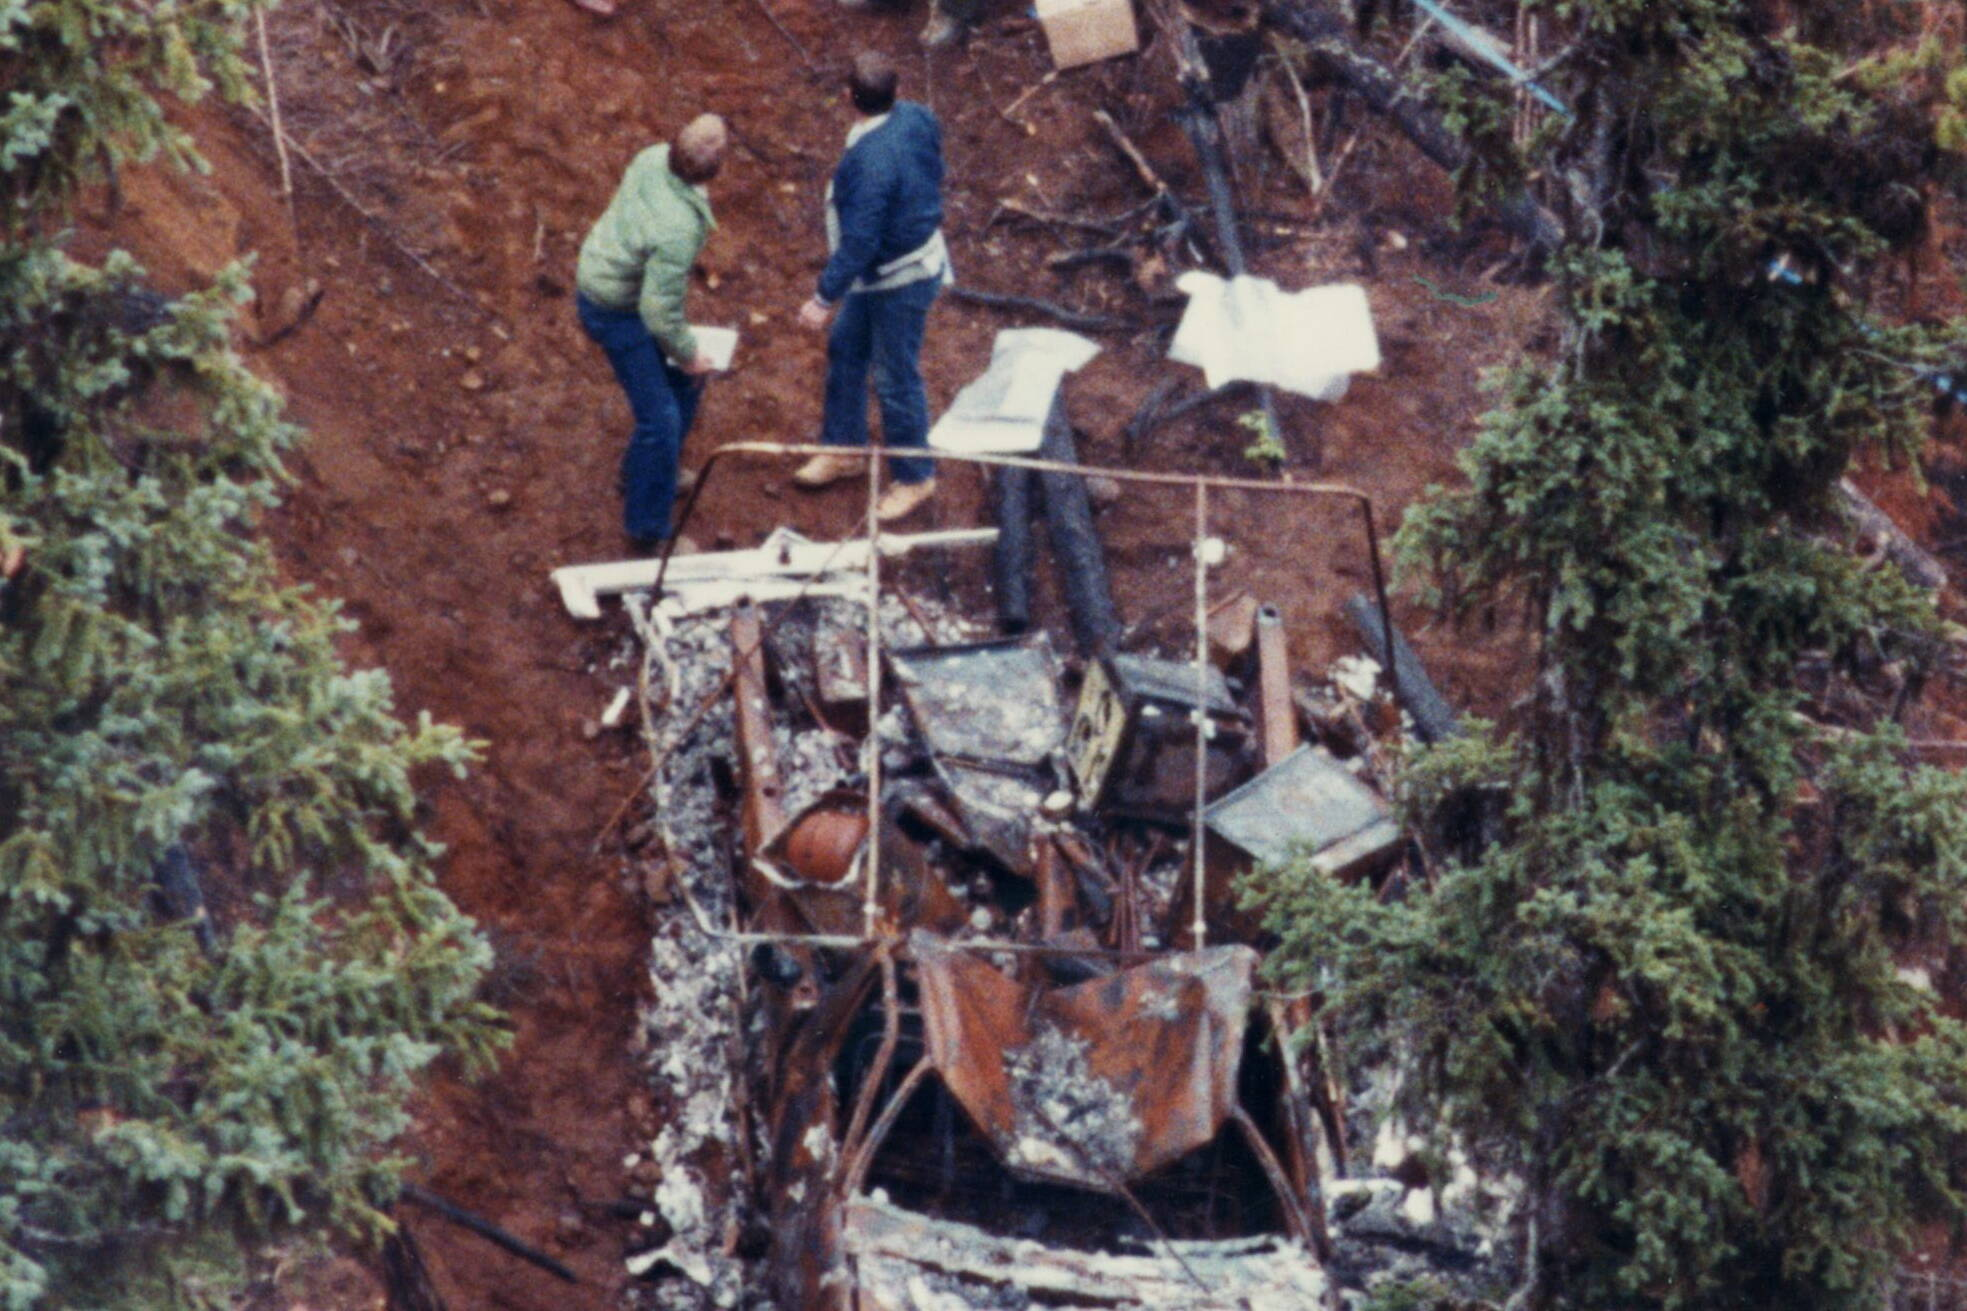 Investigators look over the burnt hulk of the Bentley's camper found just north of Clearwater. B.C. in Oct. 1983. David Ennis (formerly David Shearing) convicted of killing three generations of a BC family in a mass murder faces his first parole hearing Wednesday Oct. 22, 2008. Ennis was convicted in the deaths of six members of the Bentley- Johnson family while they were camping in Wells Gray Park, in the BC Interior, in 1982. THE CANADIAN PRESS/ Gerry Kahrmann